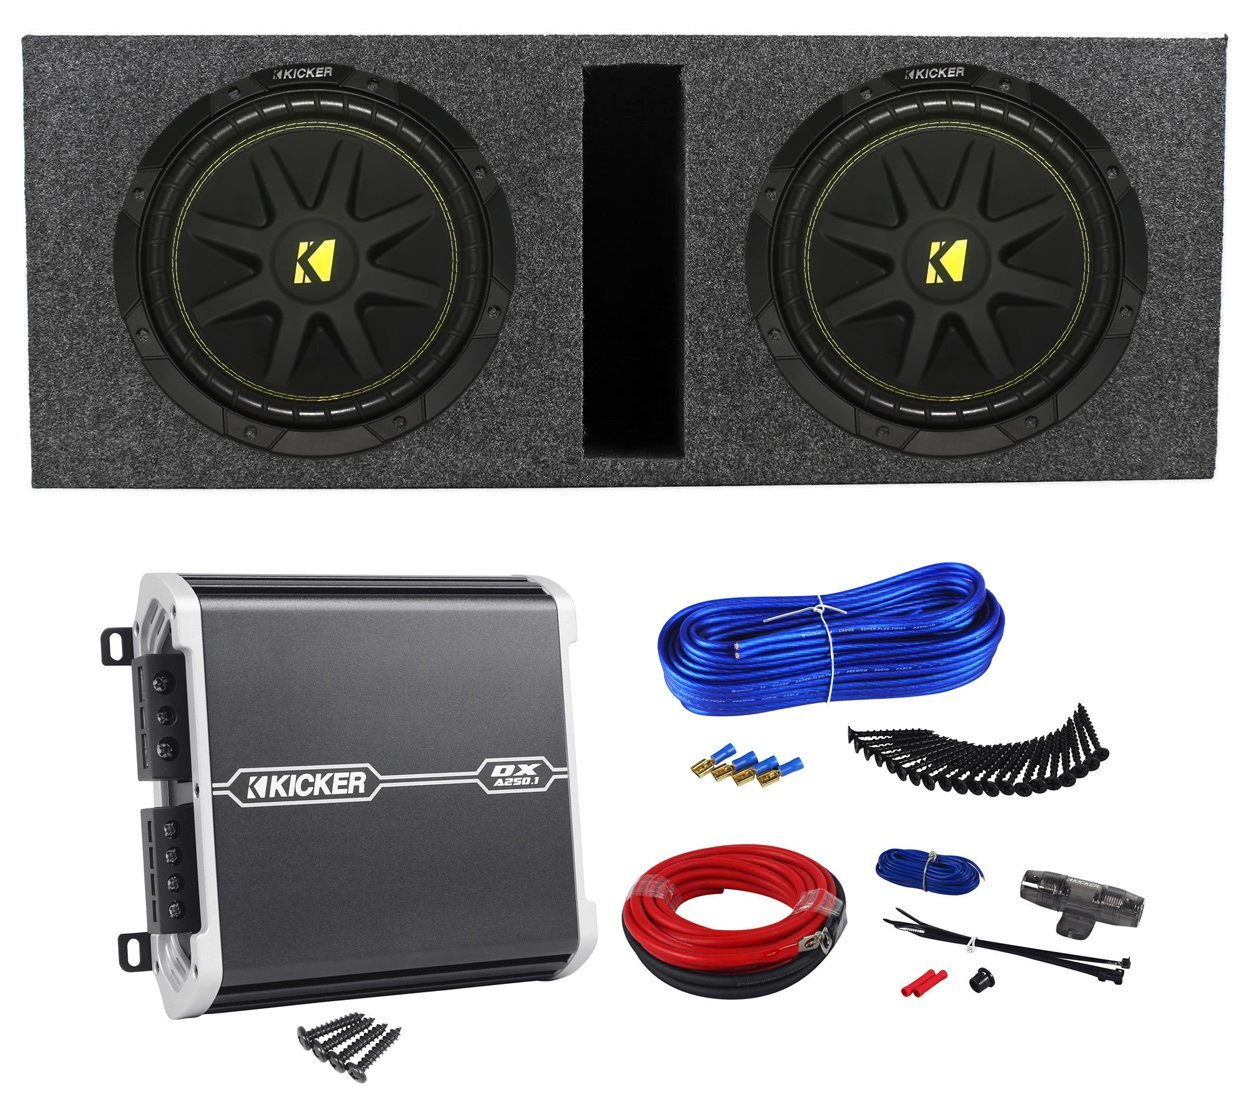 Cheap Kicker Subs And Amp Combo, find Kicker Subs And Amp